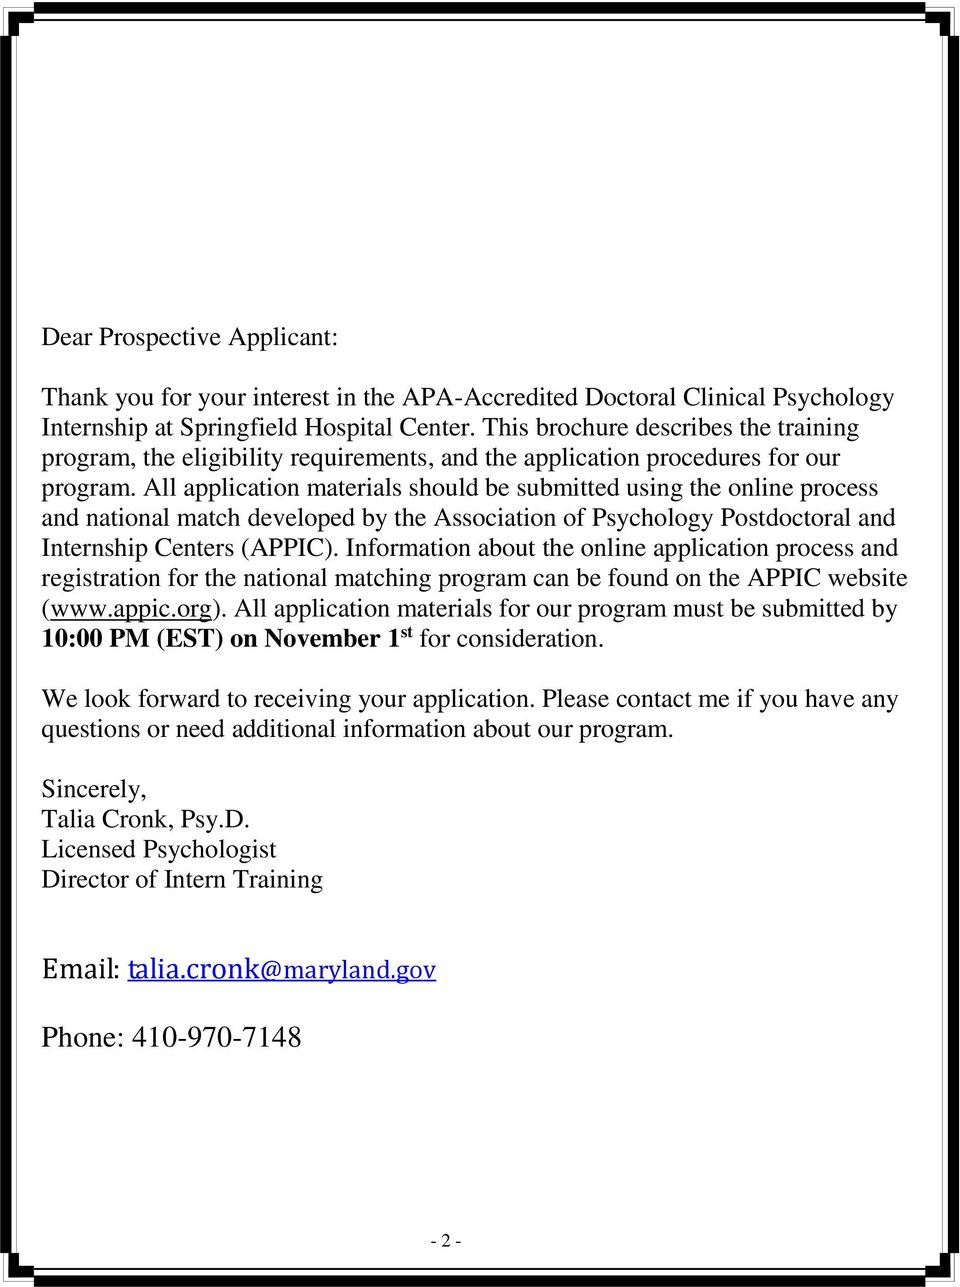 All application materials should be submitted using the online process and national match developed by the Association of Psychology Postdoctoral and Internship Centers (APPIC).